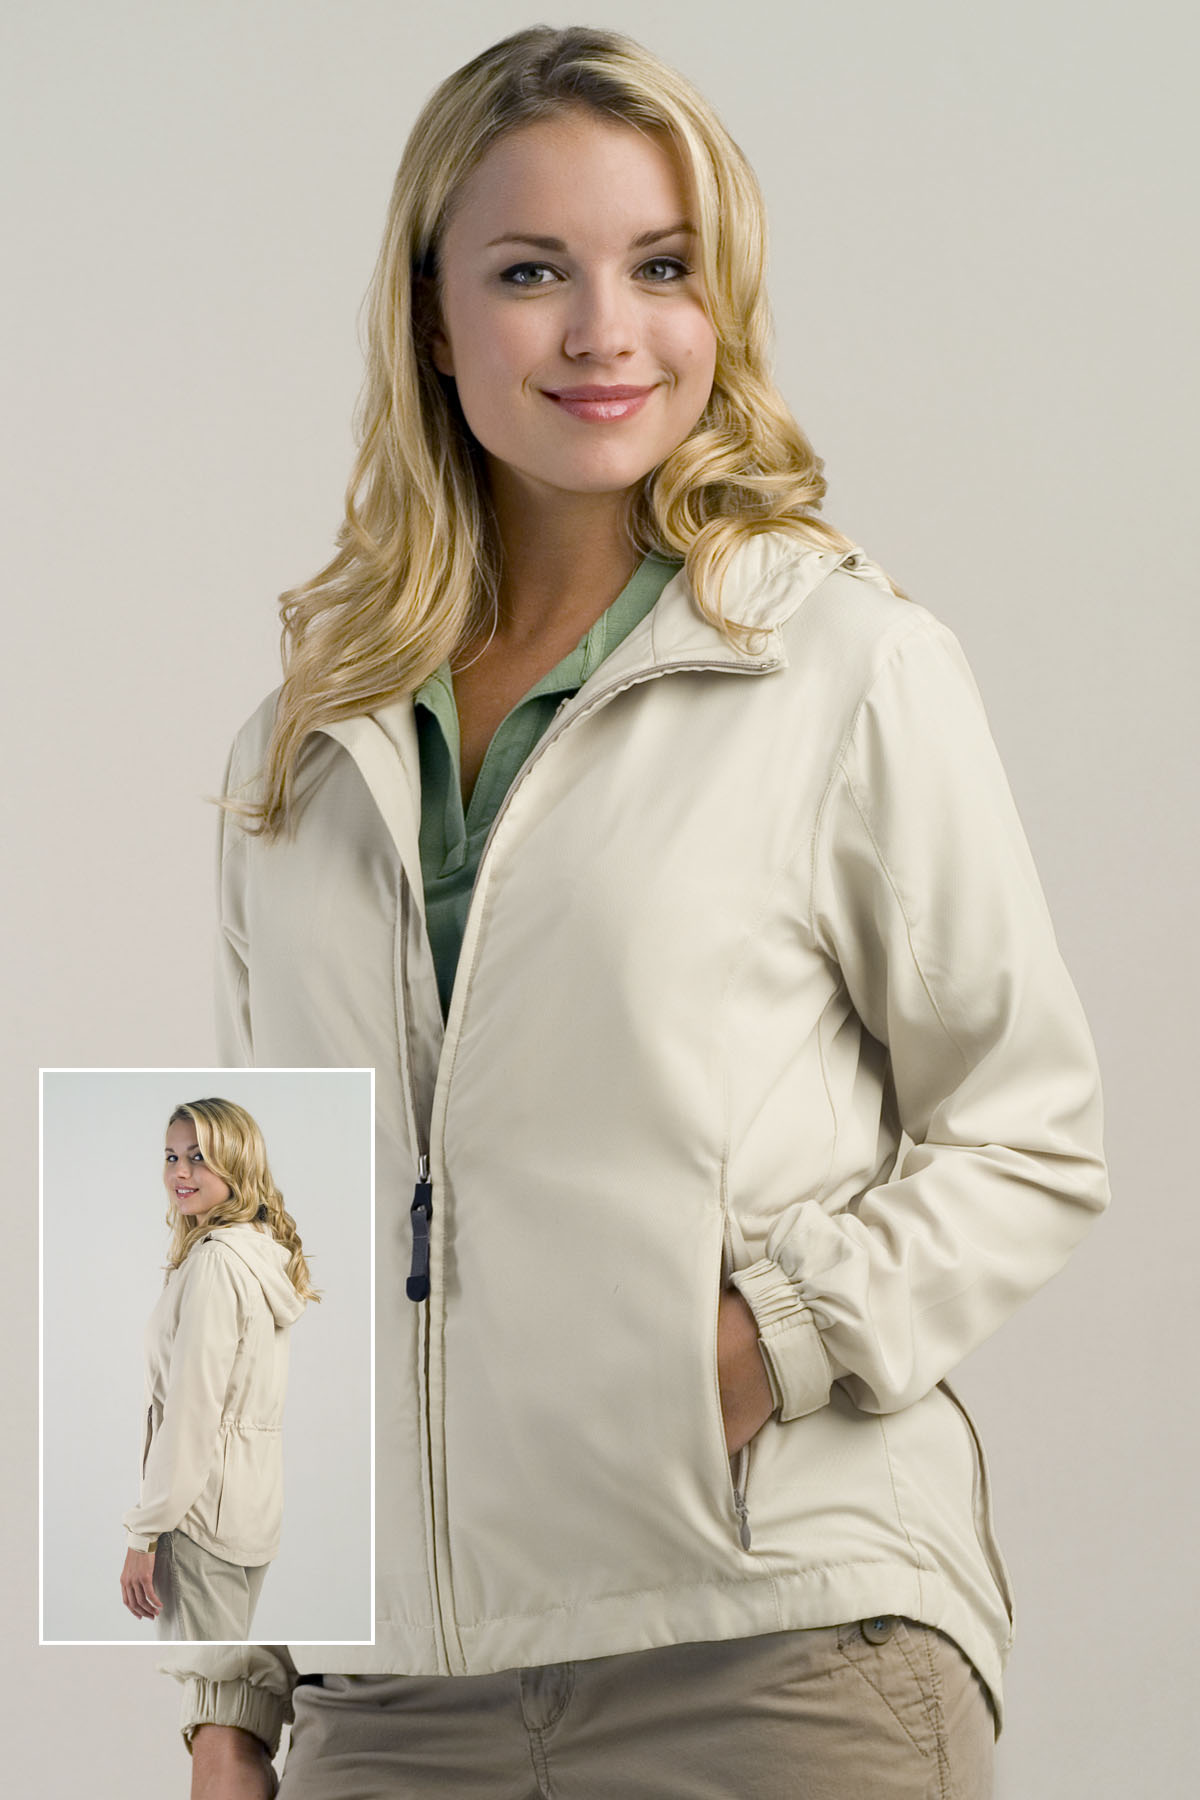 Vantage 7291 Women S Lightweight Packable Rain Jacket 30 78 Women S Outerwear